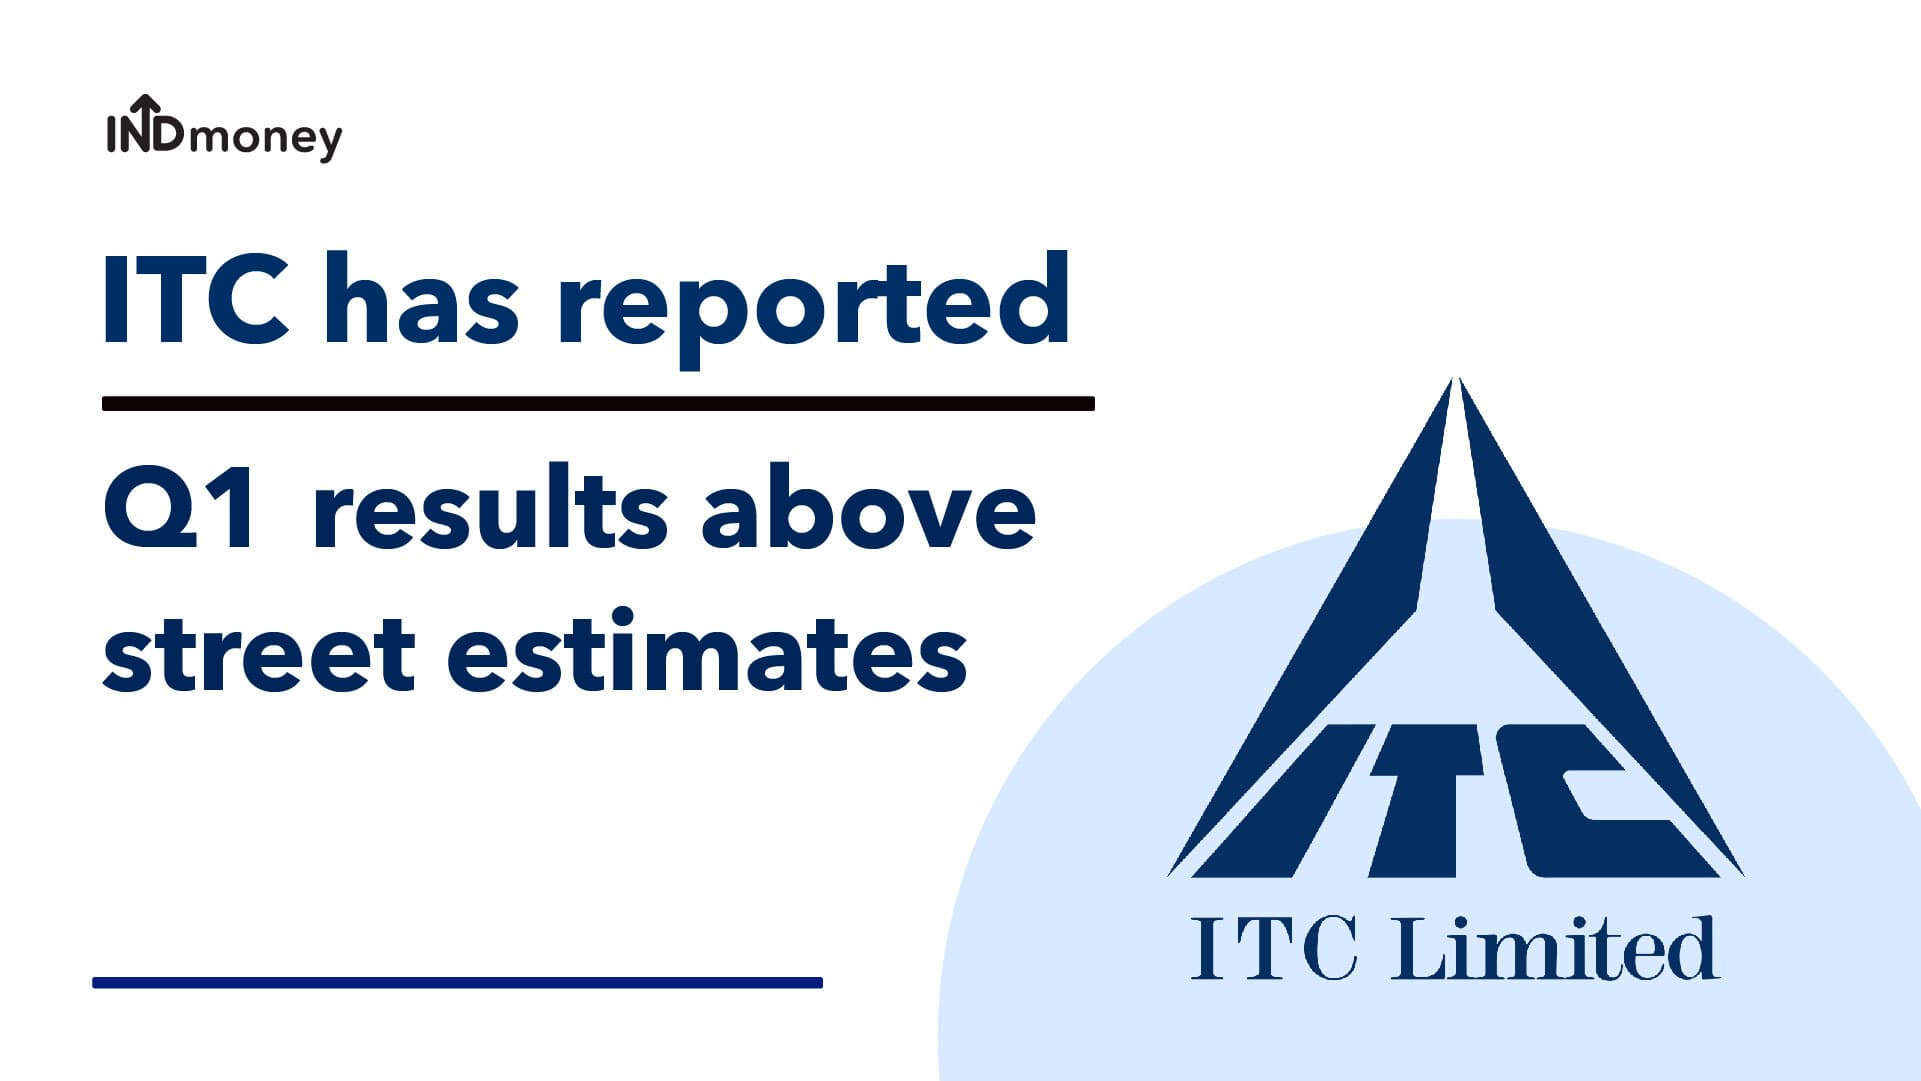 ITC Results: ITC Quarterly Results for Q1 (2021) Date, Earnings & More